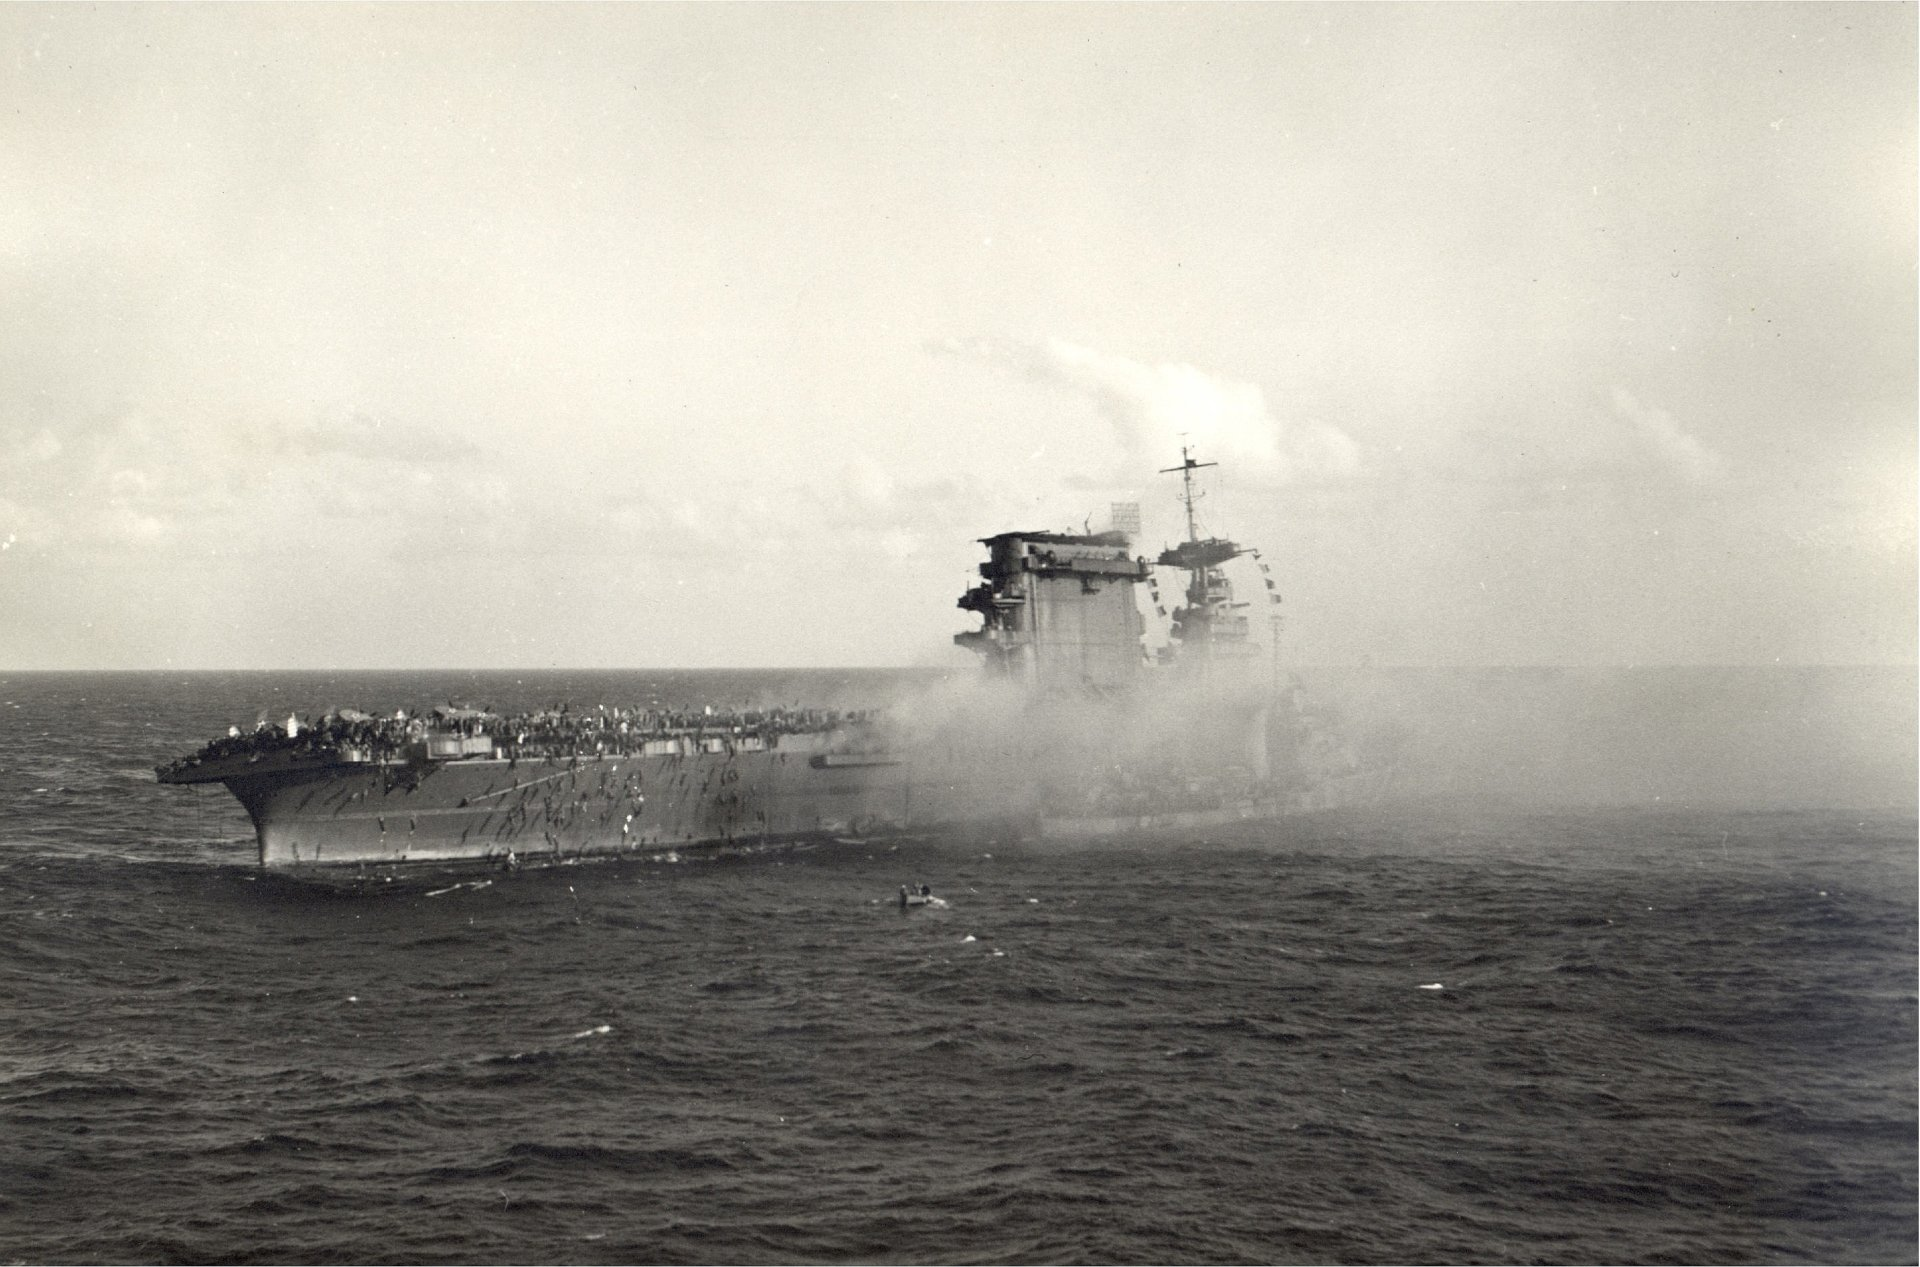 uss lexington at the battle of the coral sea fond d u0026 39  u00e9cran